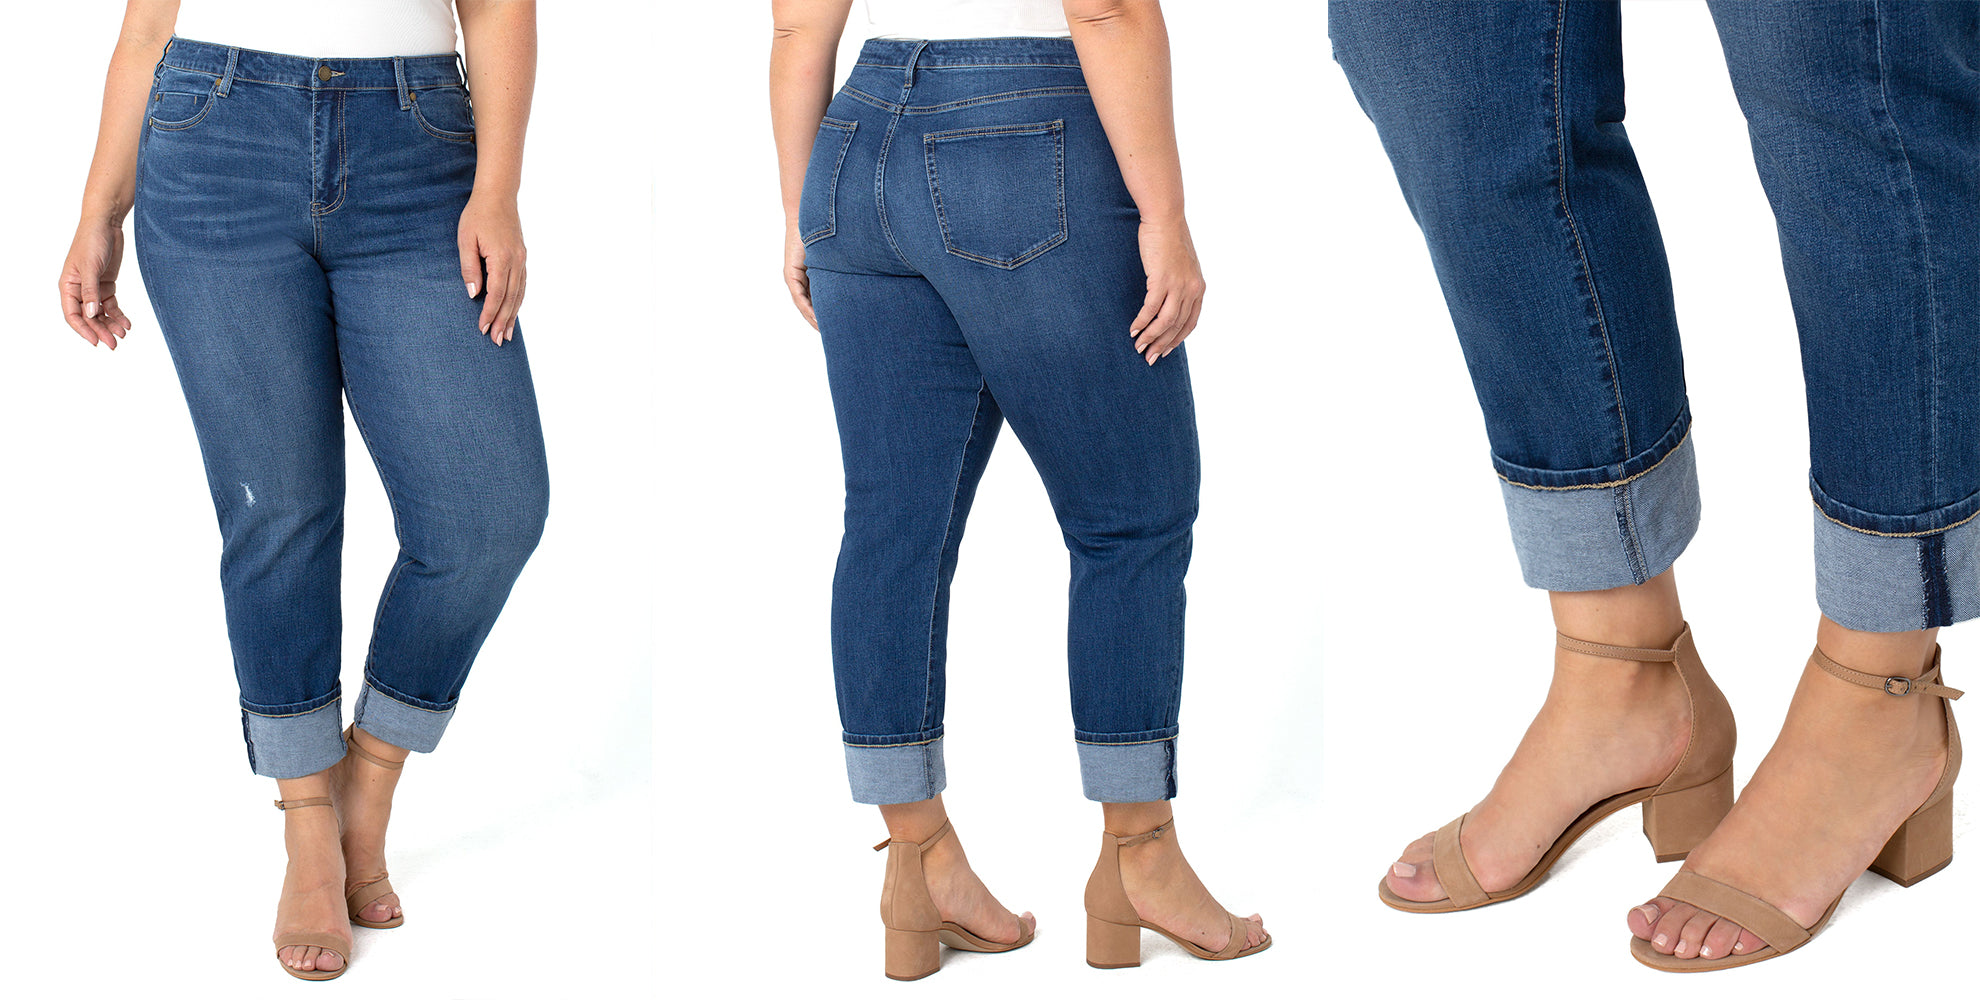 PLUS SIZE ECO MARLEY GIRLFRIEND JEAN IN A MEDIUM WASH WITH MILD DESTRUCTION ON RIGHT THIGH. Cuffed at the hem and can be un cuffed for a longer inseam.